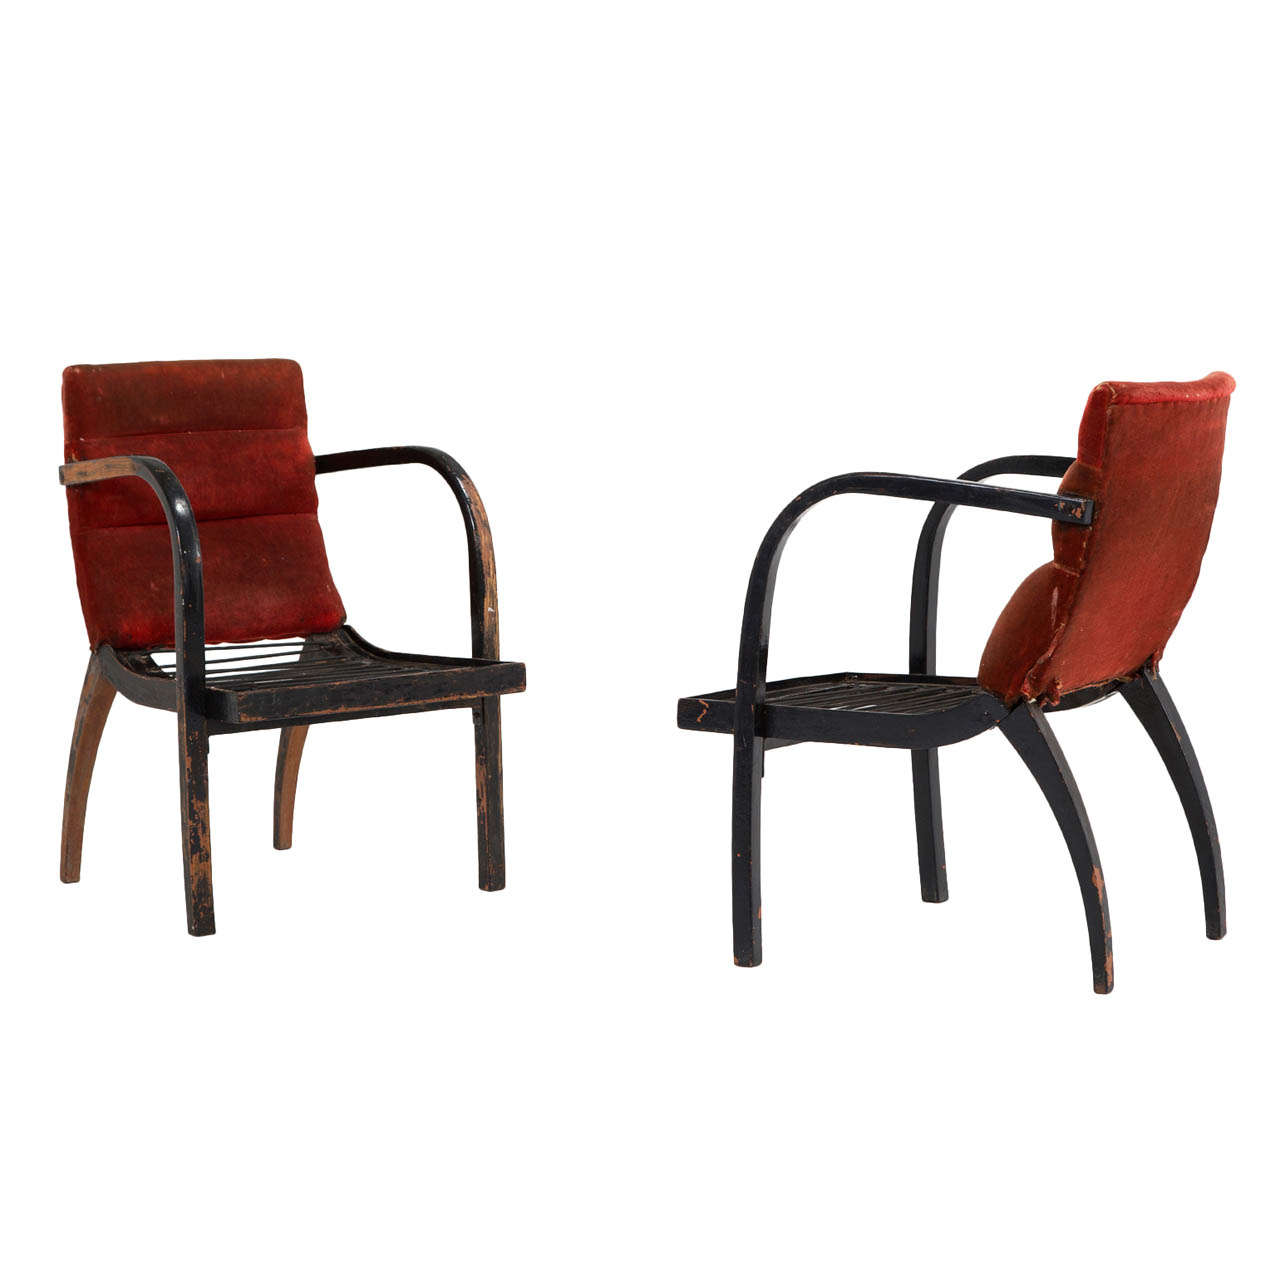 Thonet Bentwood Armchairs with Original Upholstery, 1950s